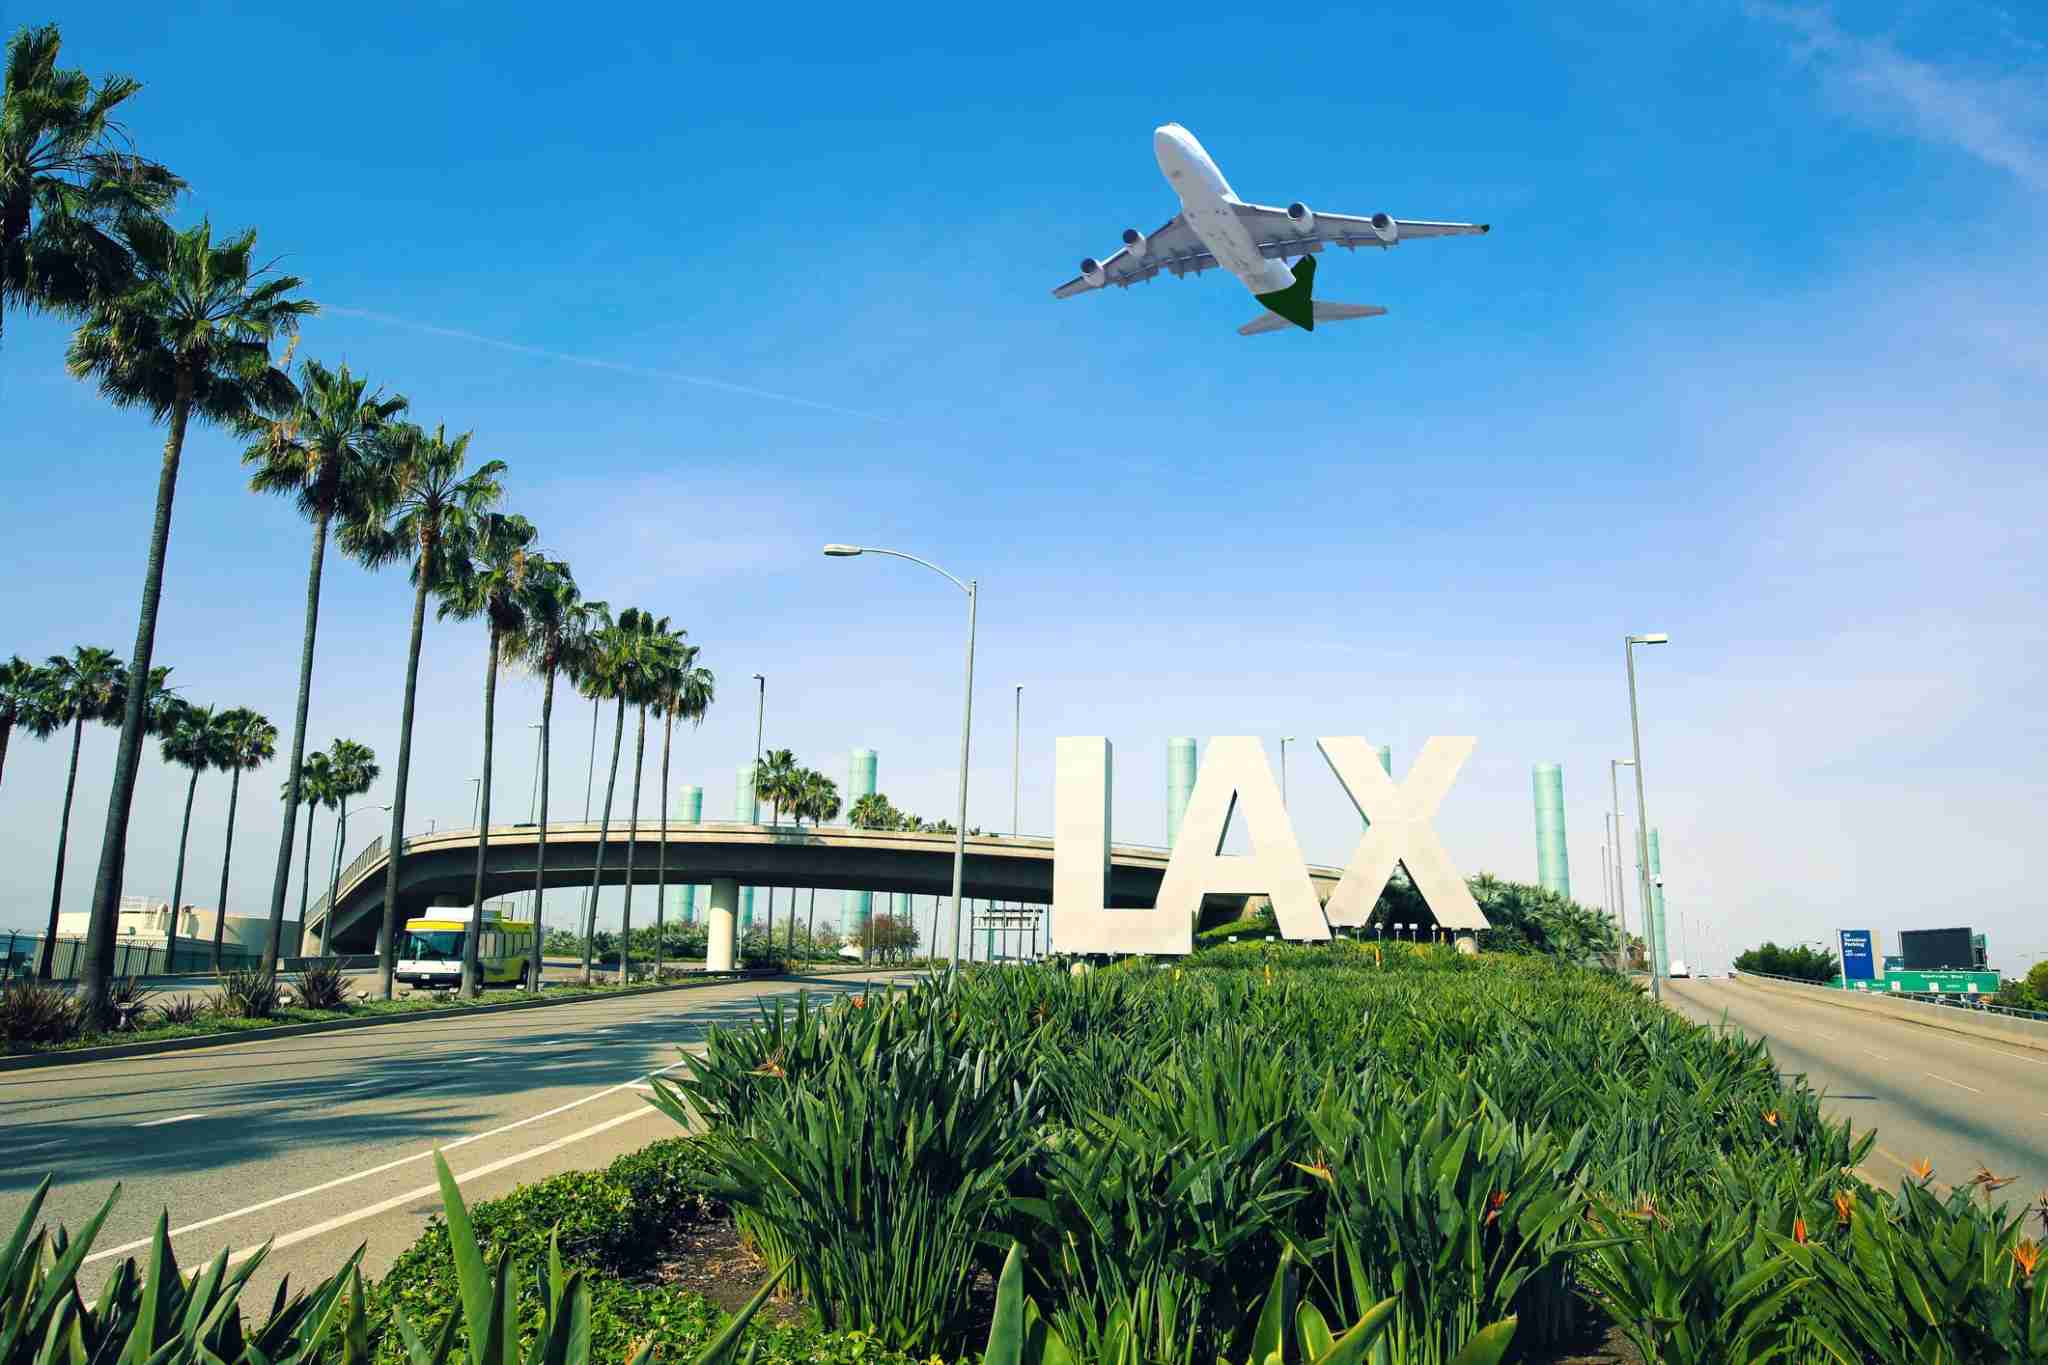 LAX is gateway to the world, and welcomes more than 63 million passengers a year. (photo credit: TriggerPhoto)